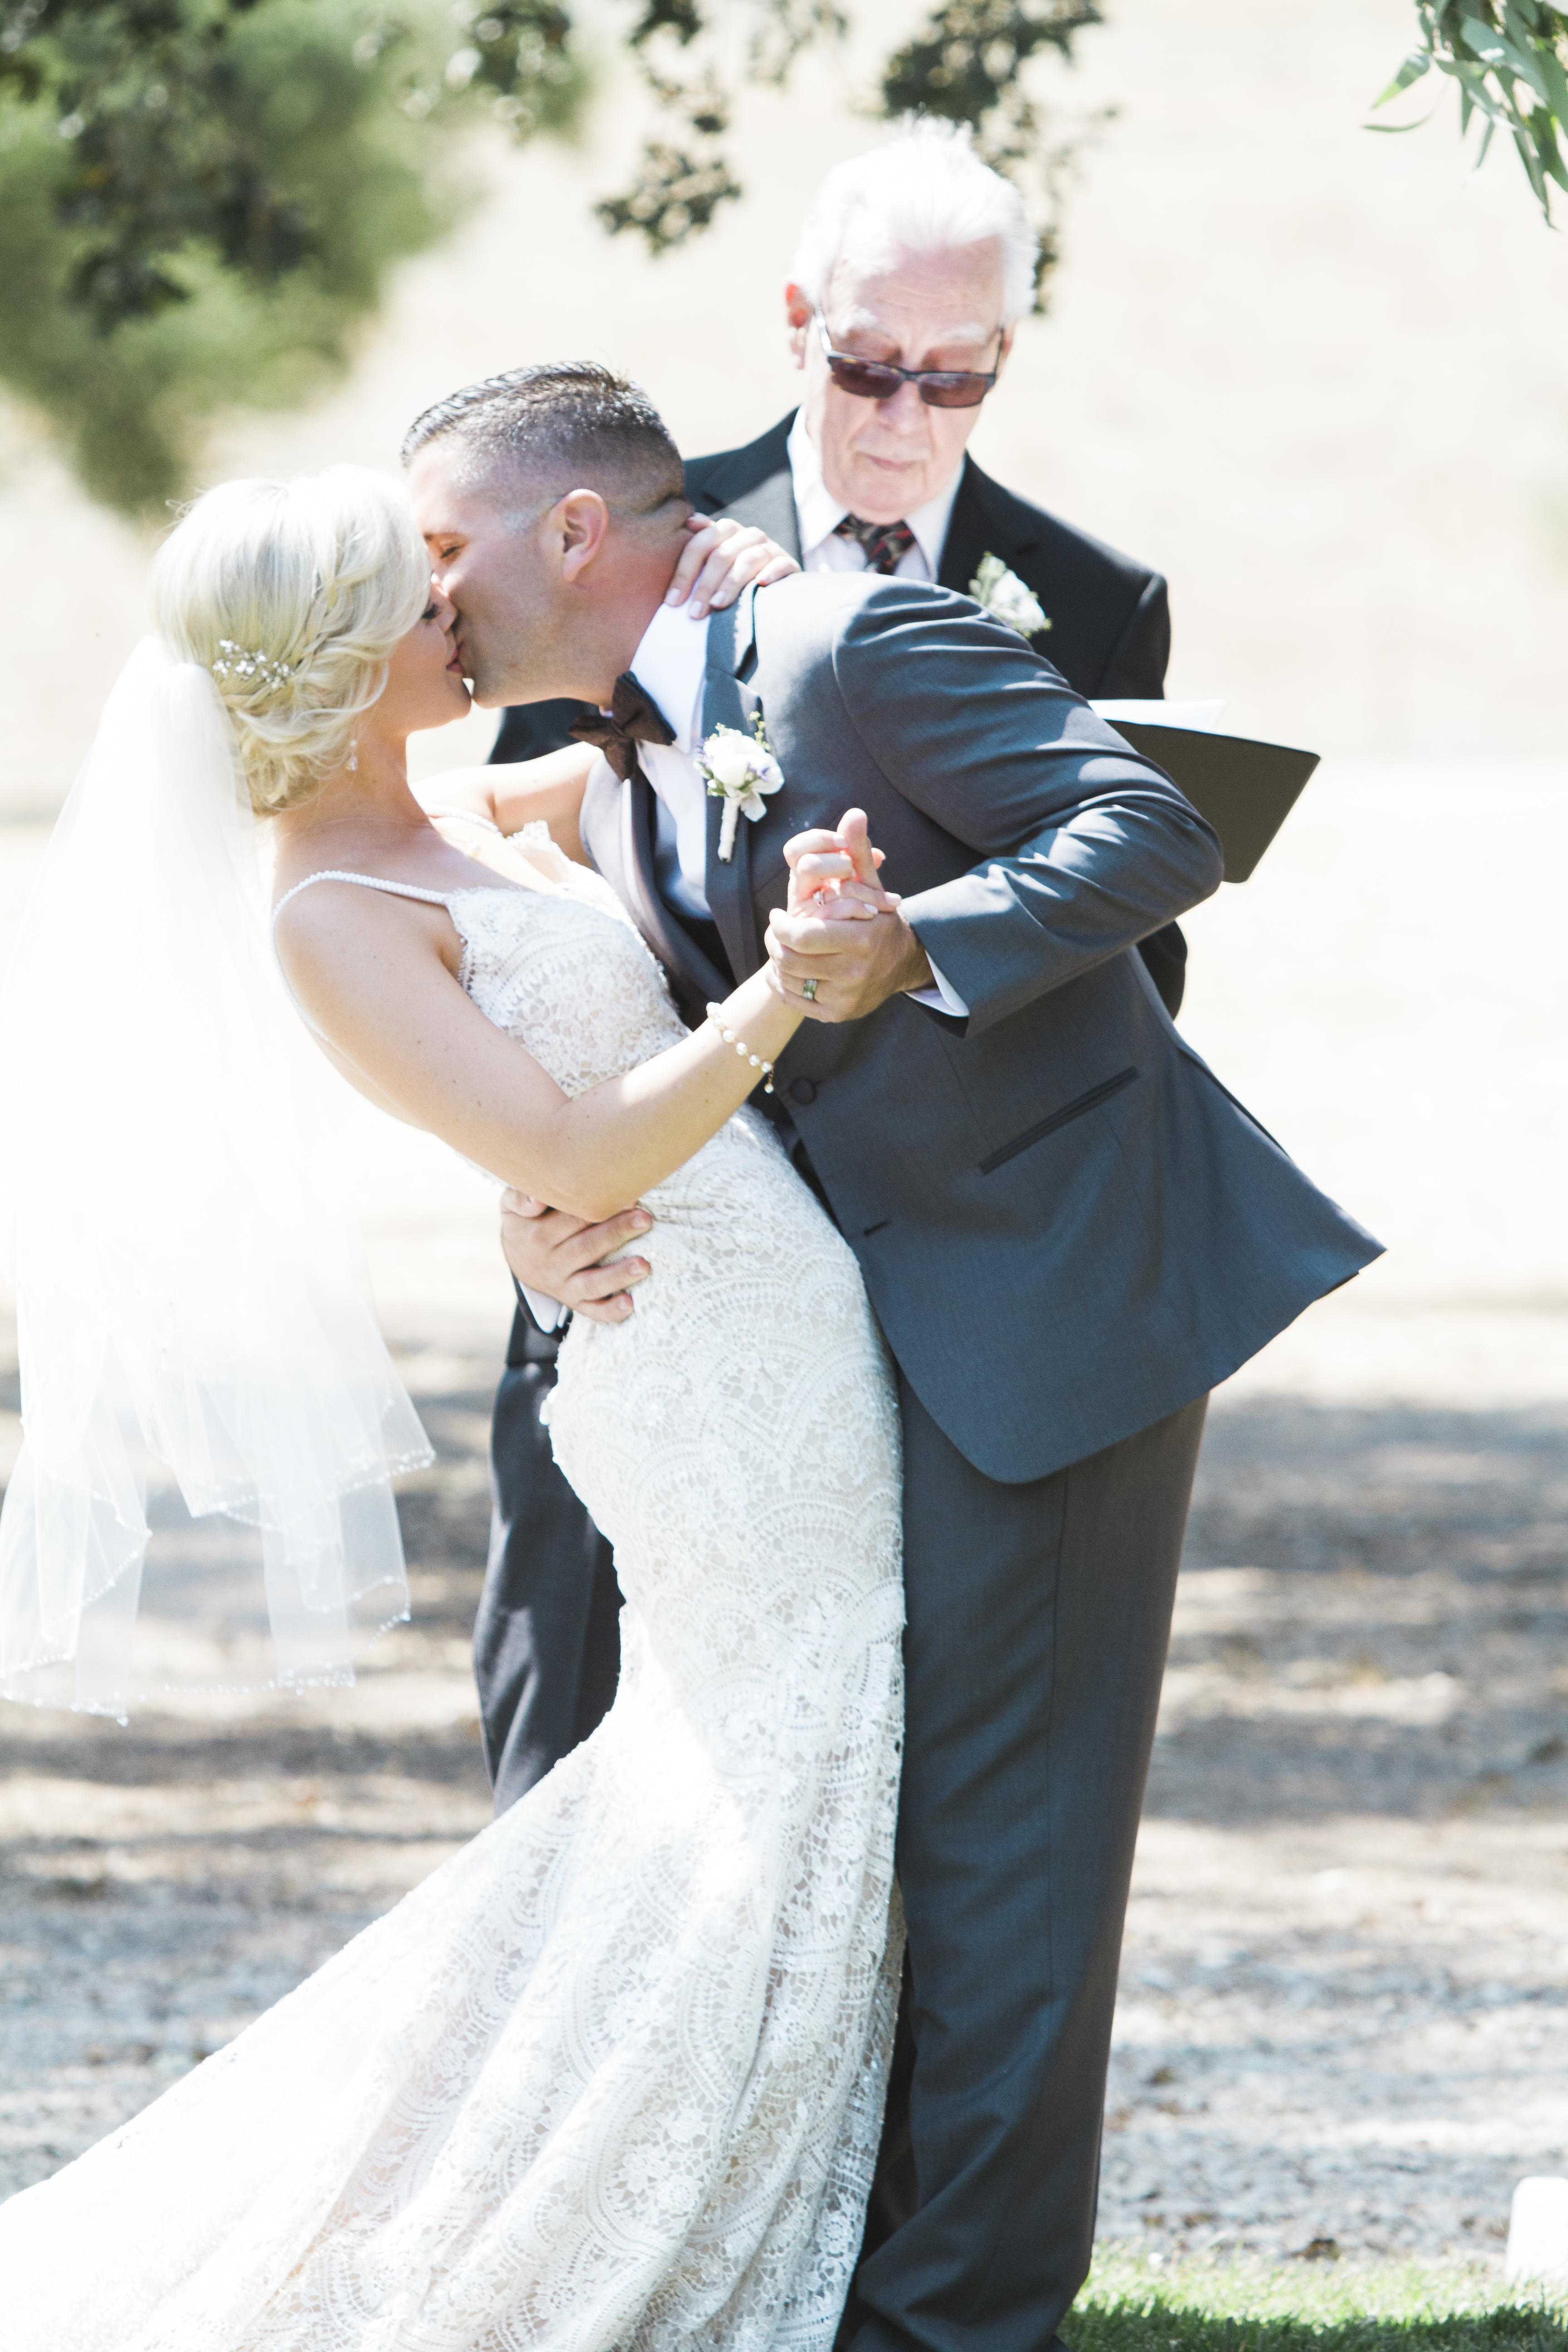 Loomis Ranch-Shannon McMillen Photography-49